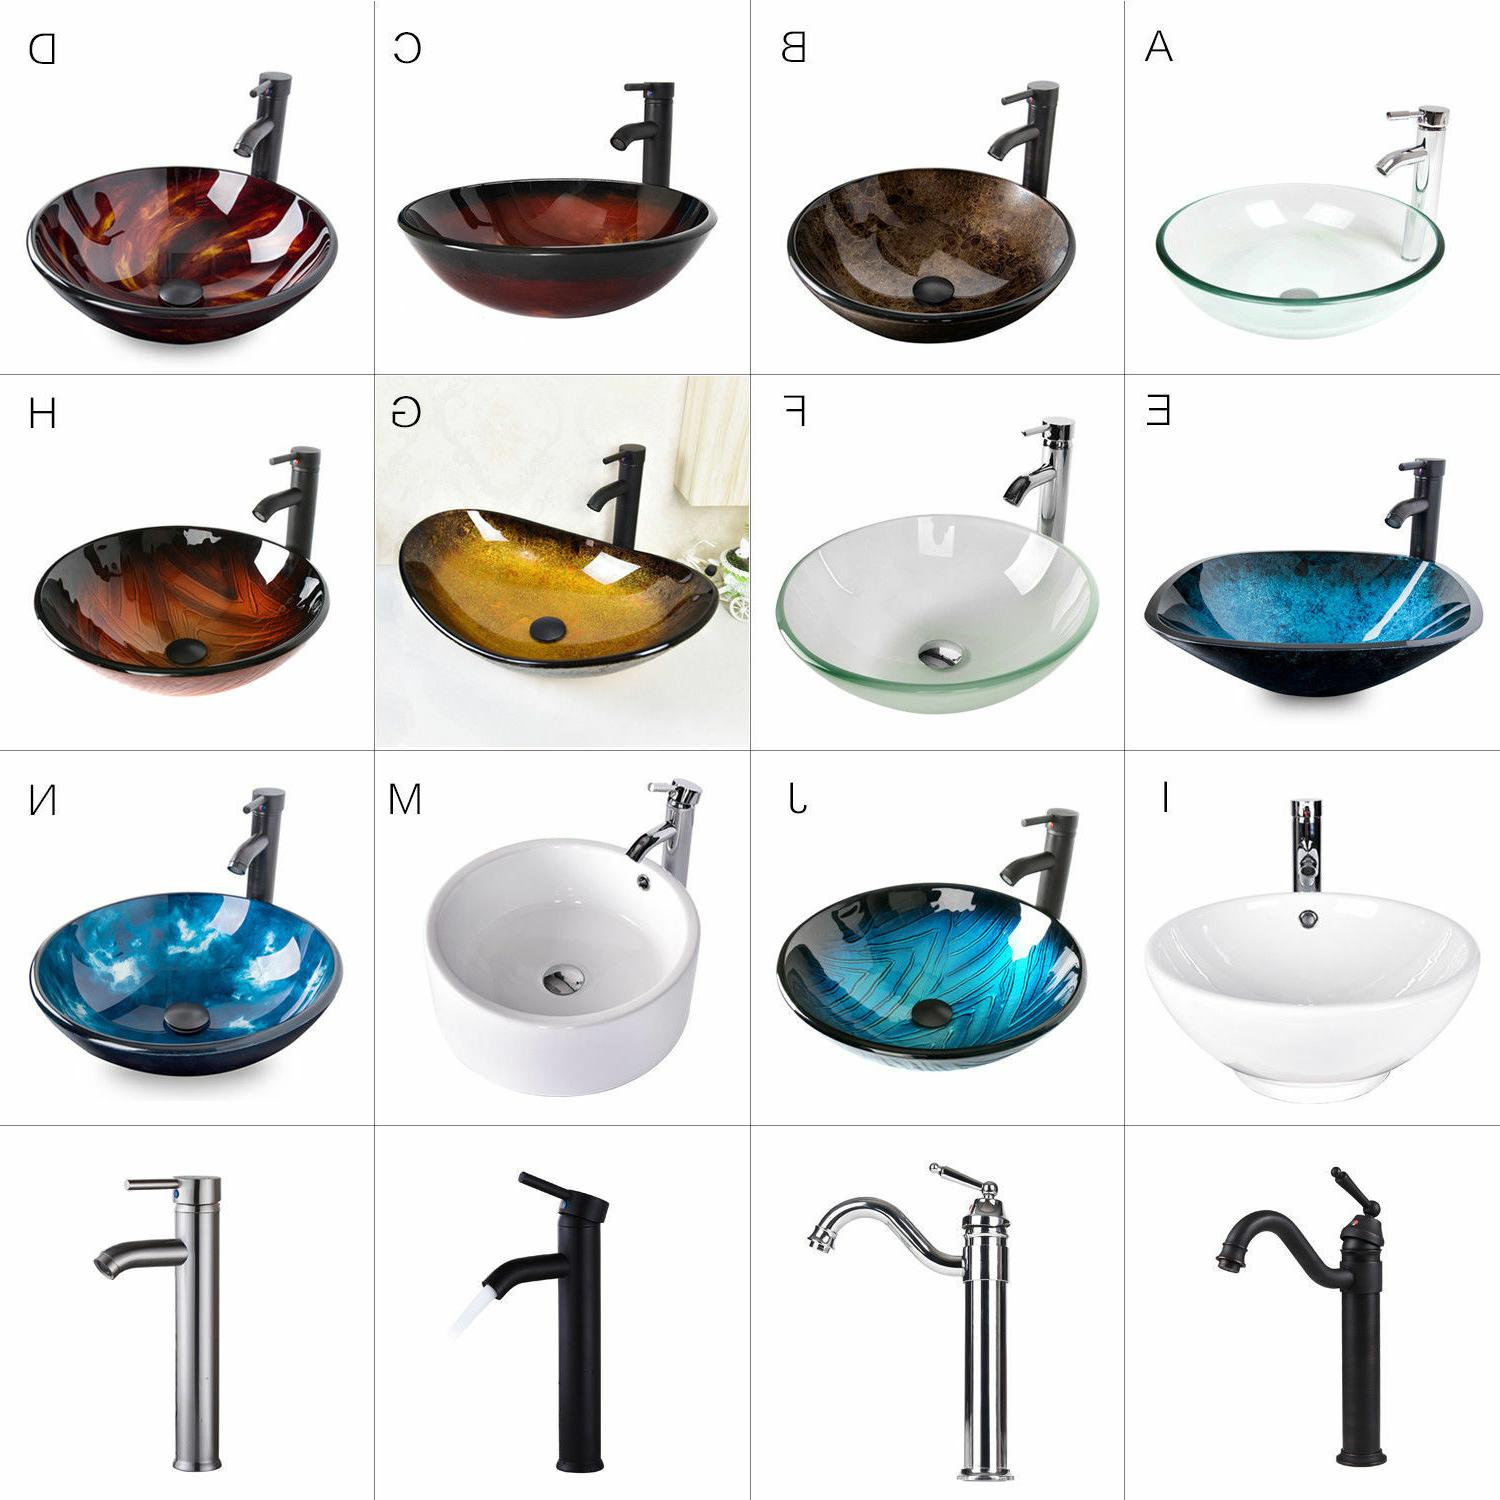 Bathroom Tempered Glass Vessel Sink Faucet Pop-up Drain Bath